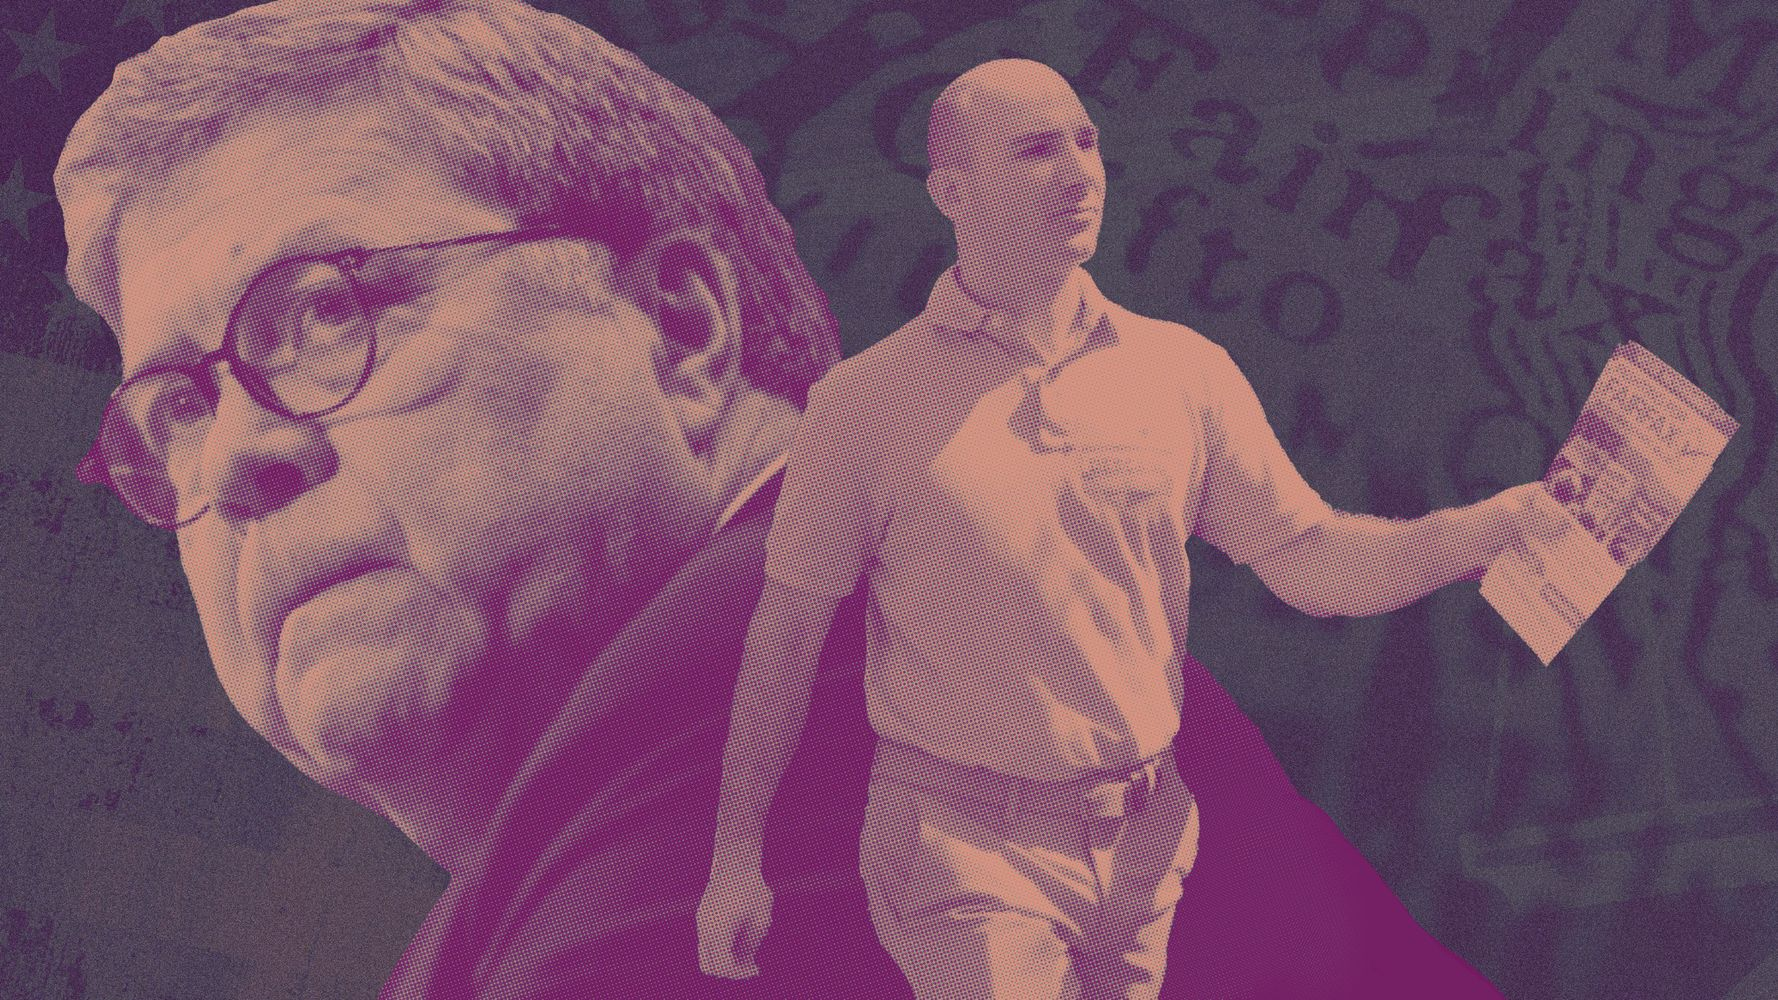 William Barr Attacked Progressive Prosecutors. His Virginia Neighbors May Just Elect One.